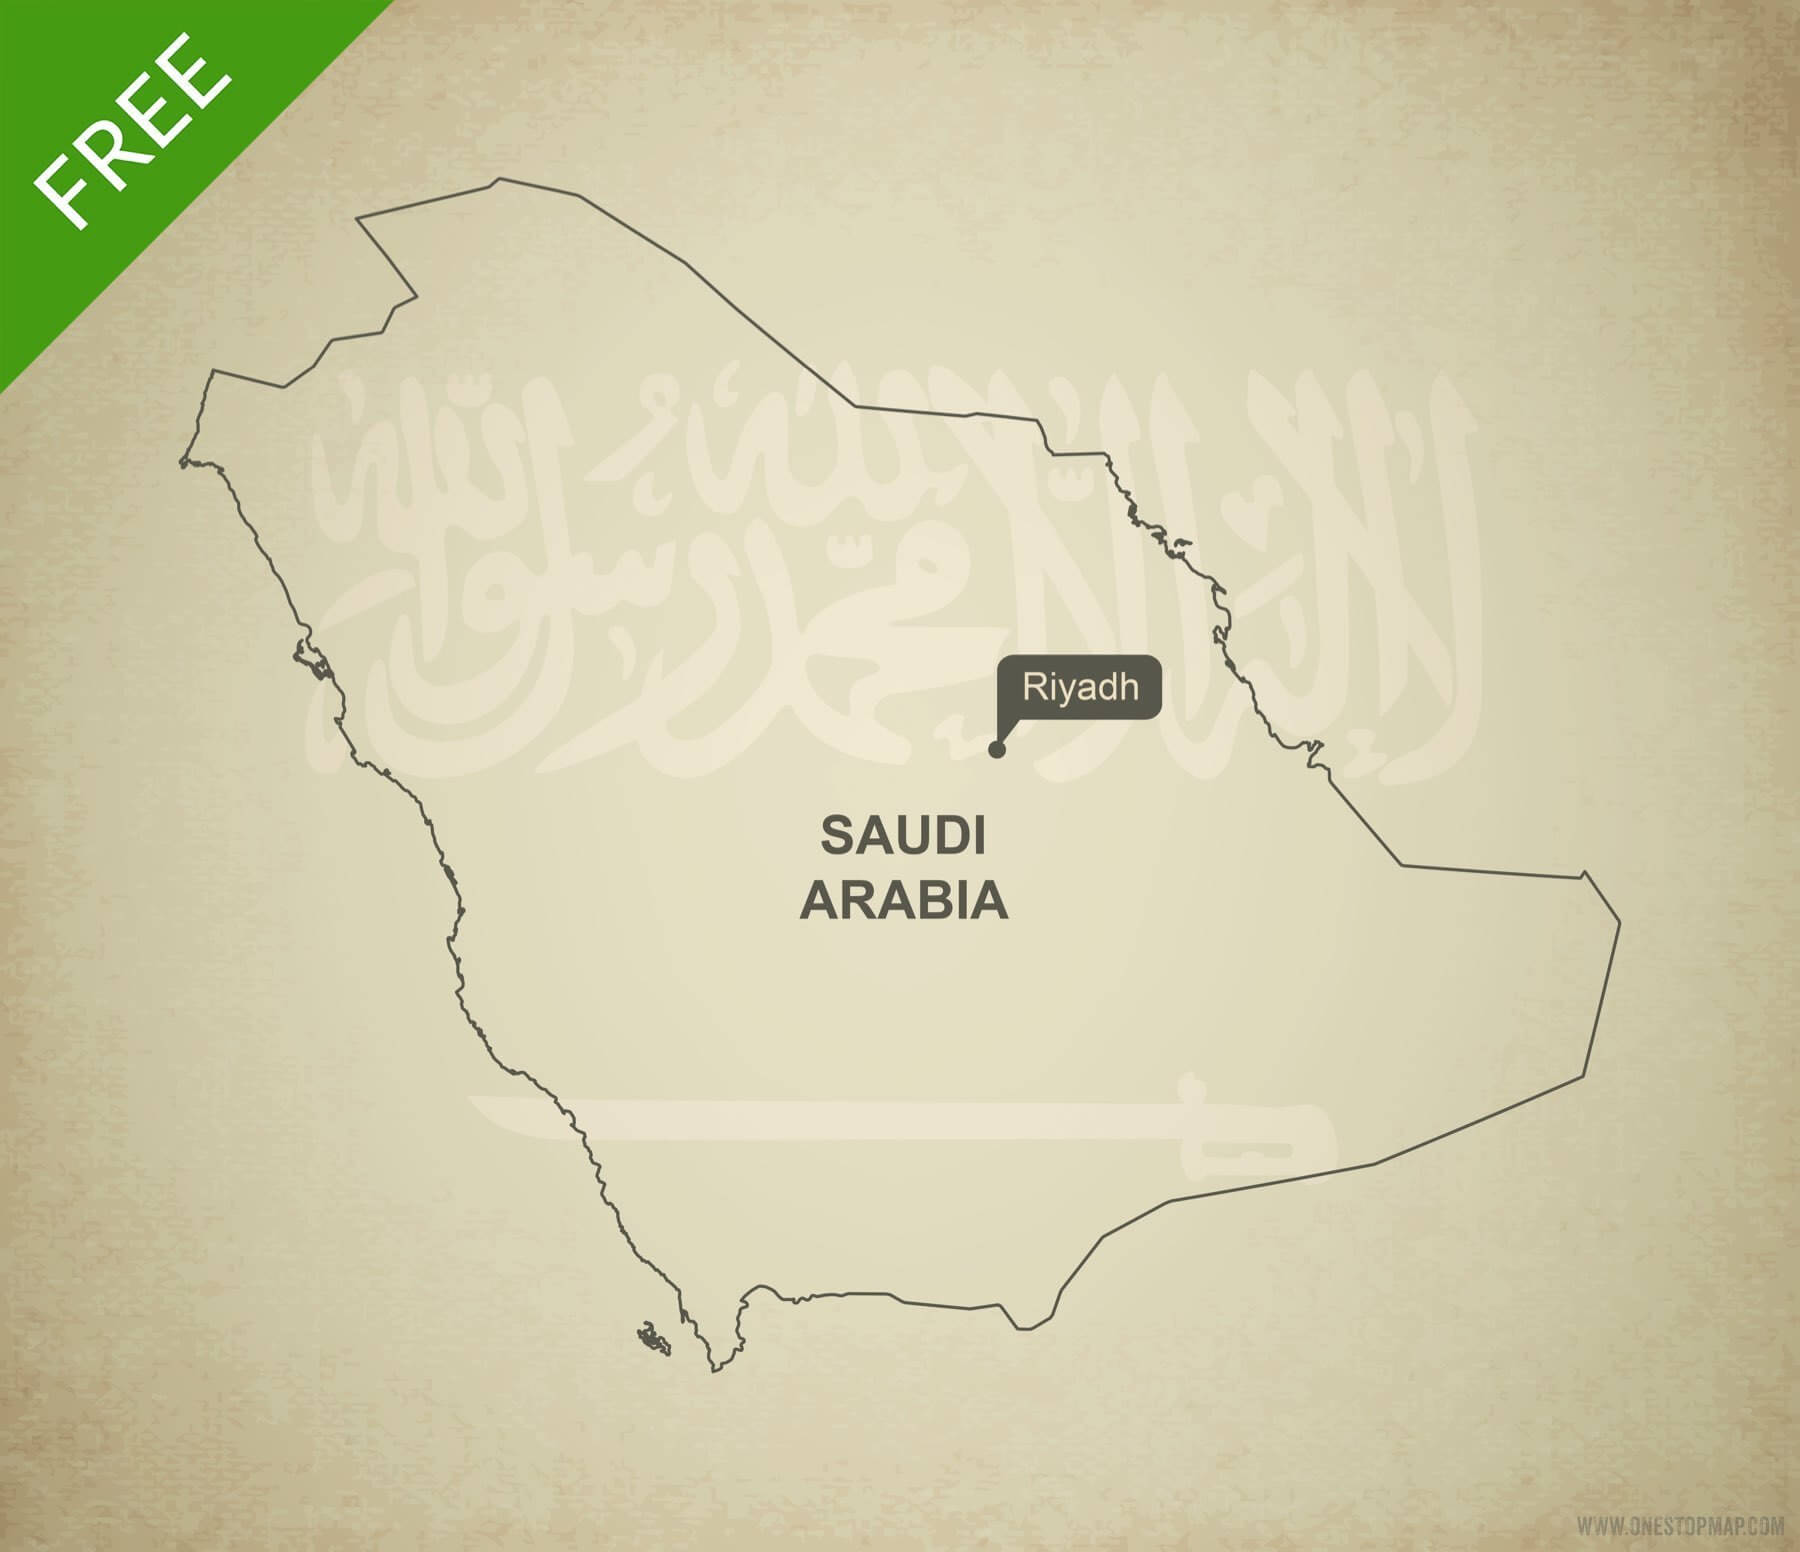 Free vector map of Saudi Arabia outline